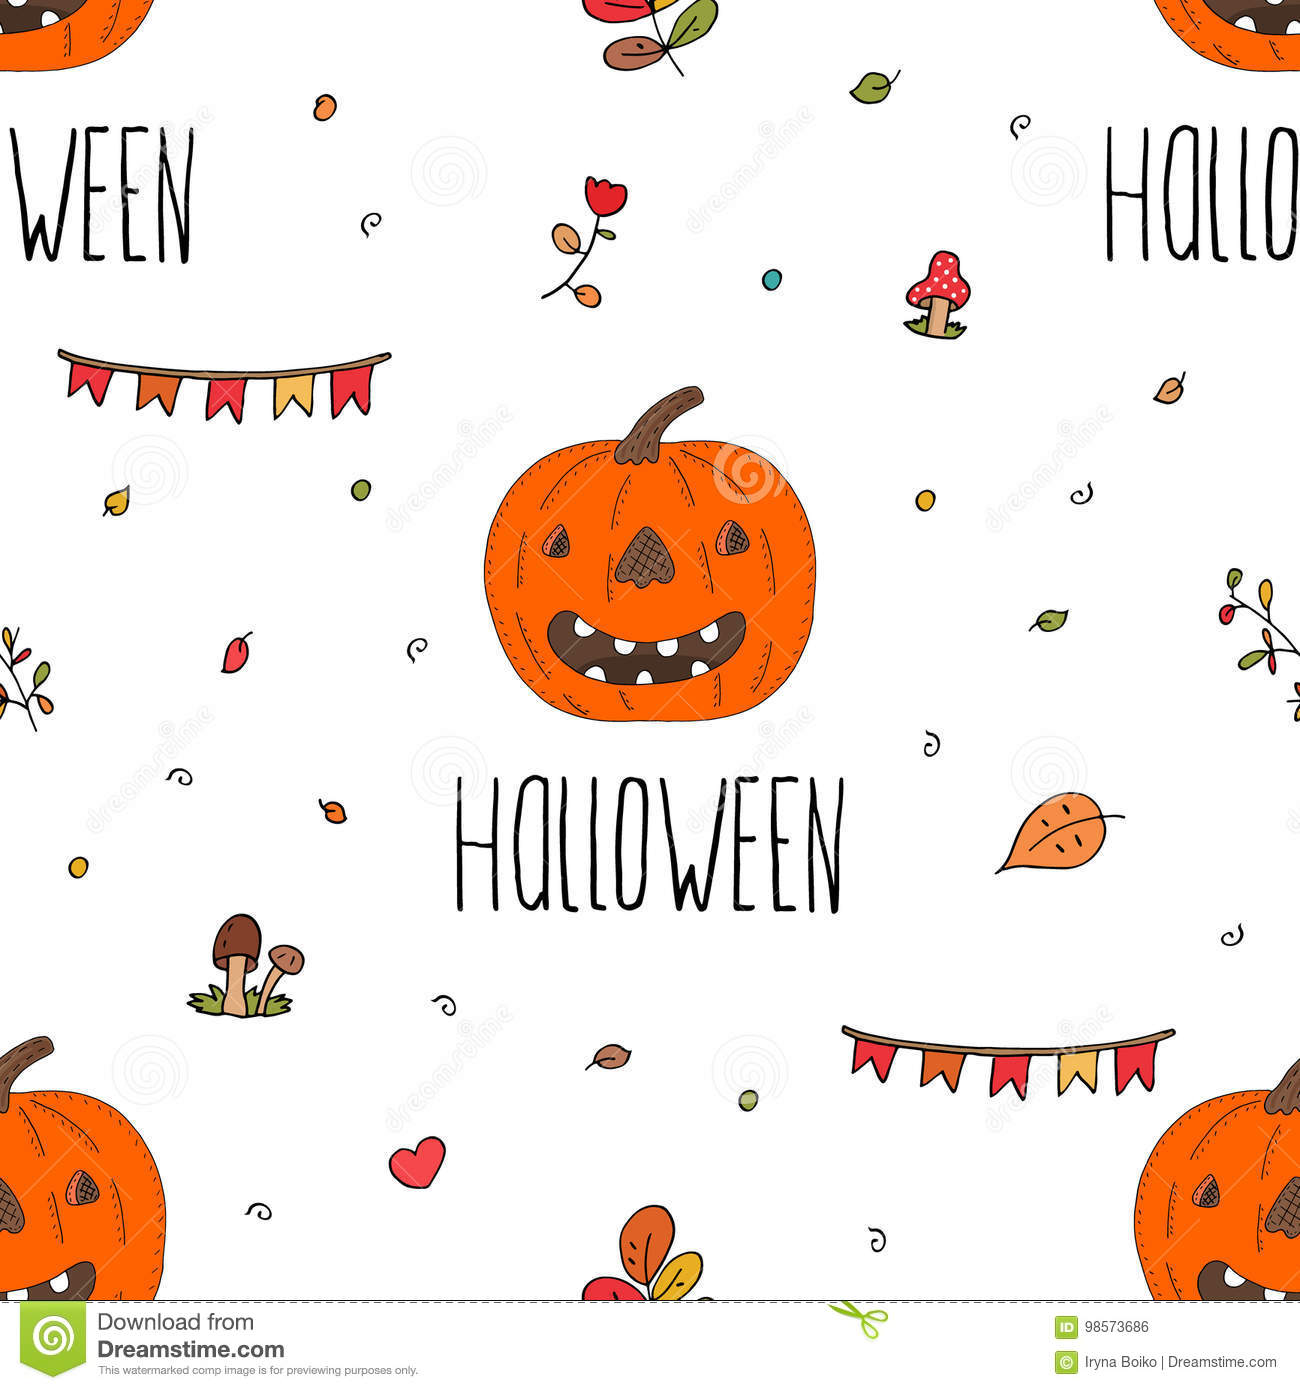 graphic regarding Pumpkin Printable Templates called Pleased Halloween Print With Pumpkin. Printable Templates